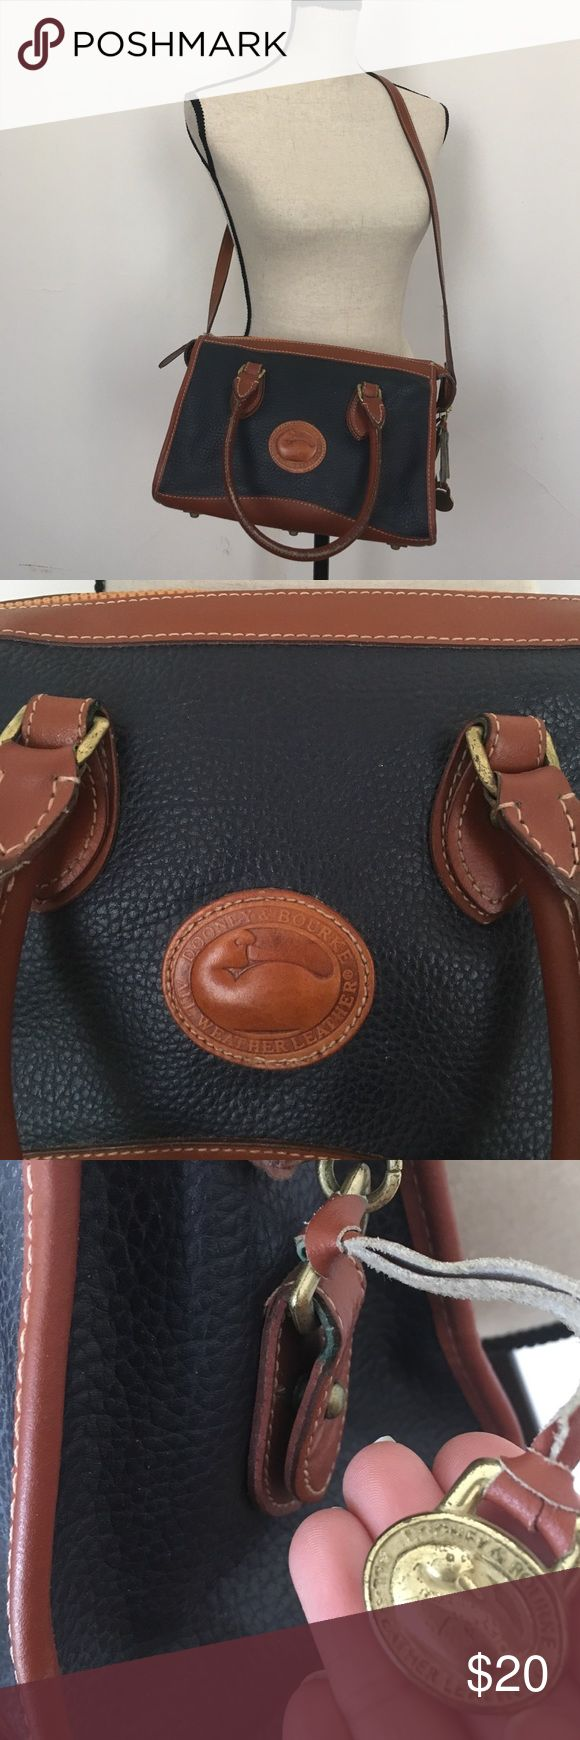 Vintage Dooney and Bourke navy purse Non adjustable removable cross body strap.  Inside is in great condition.  Please see pictures for condition. I don't think the zipper and cross body strap are original.  Price reflects this. Dooney & Bourke Bags